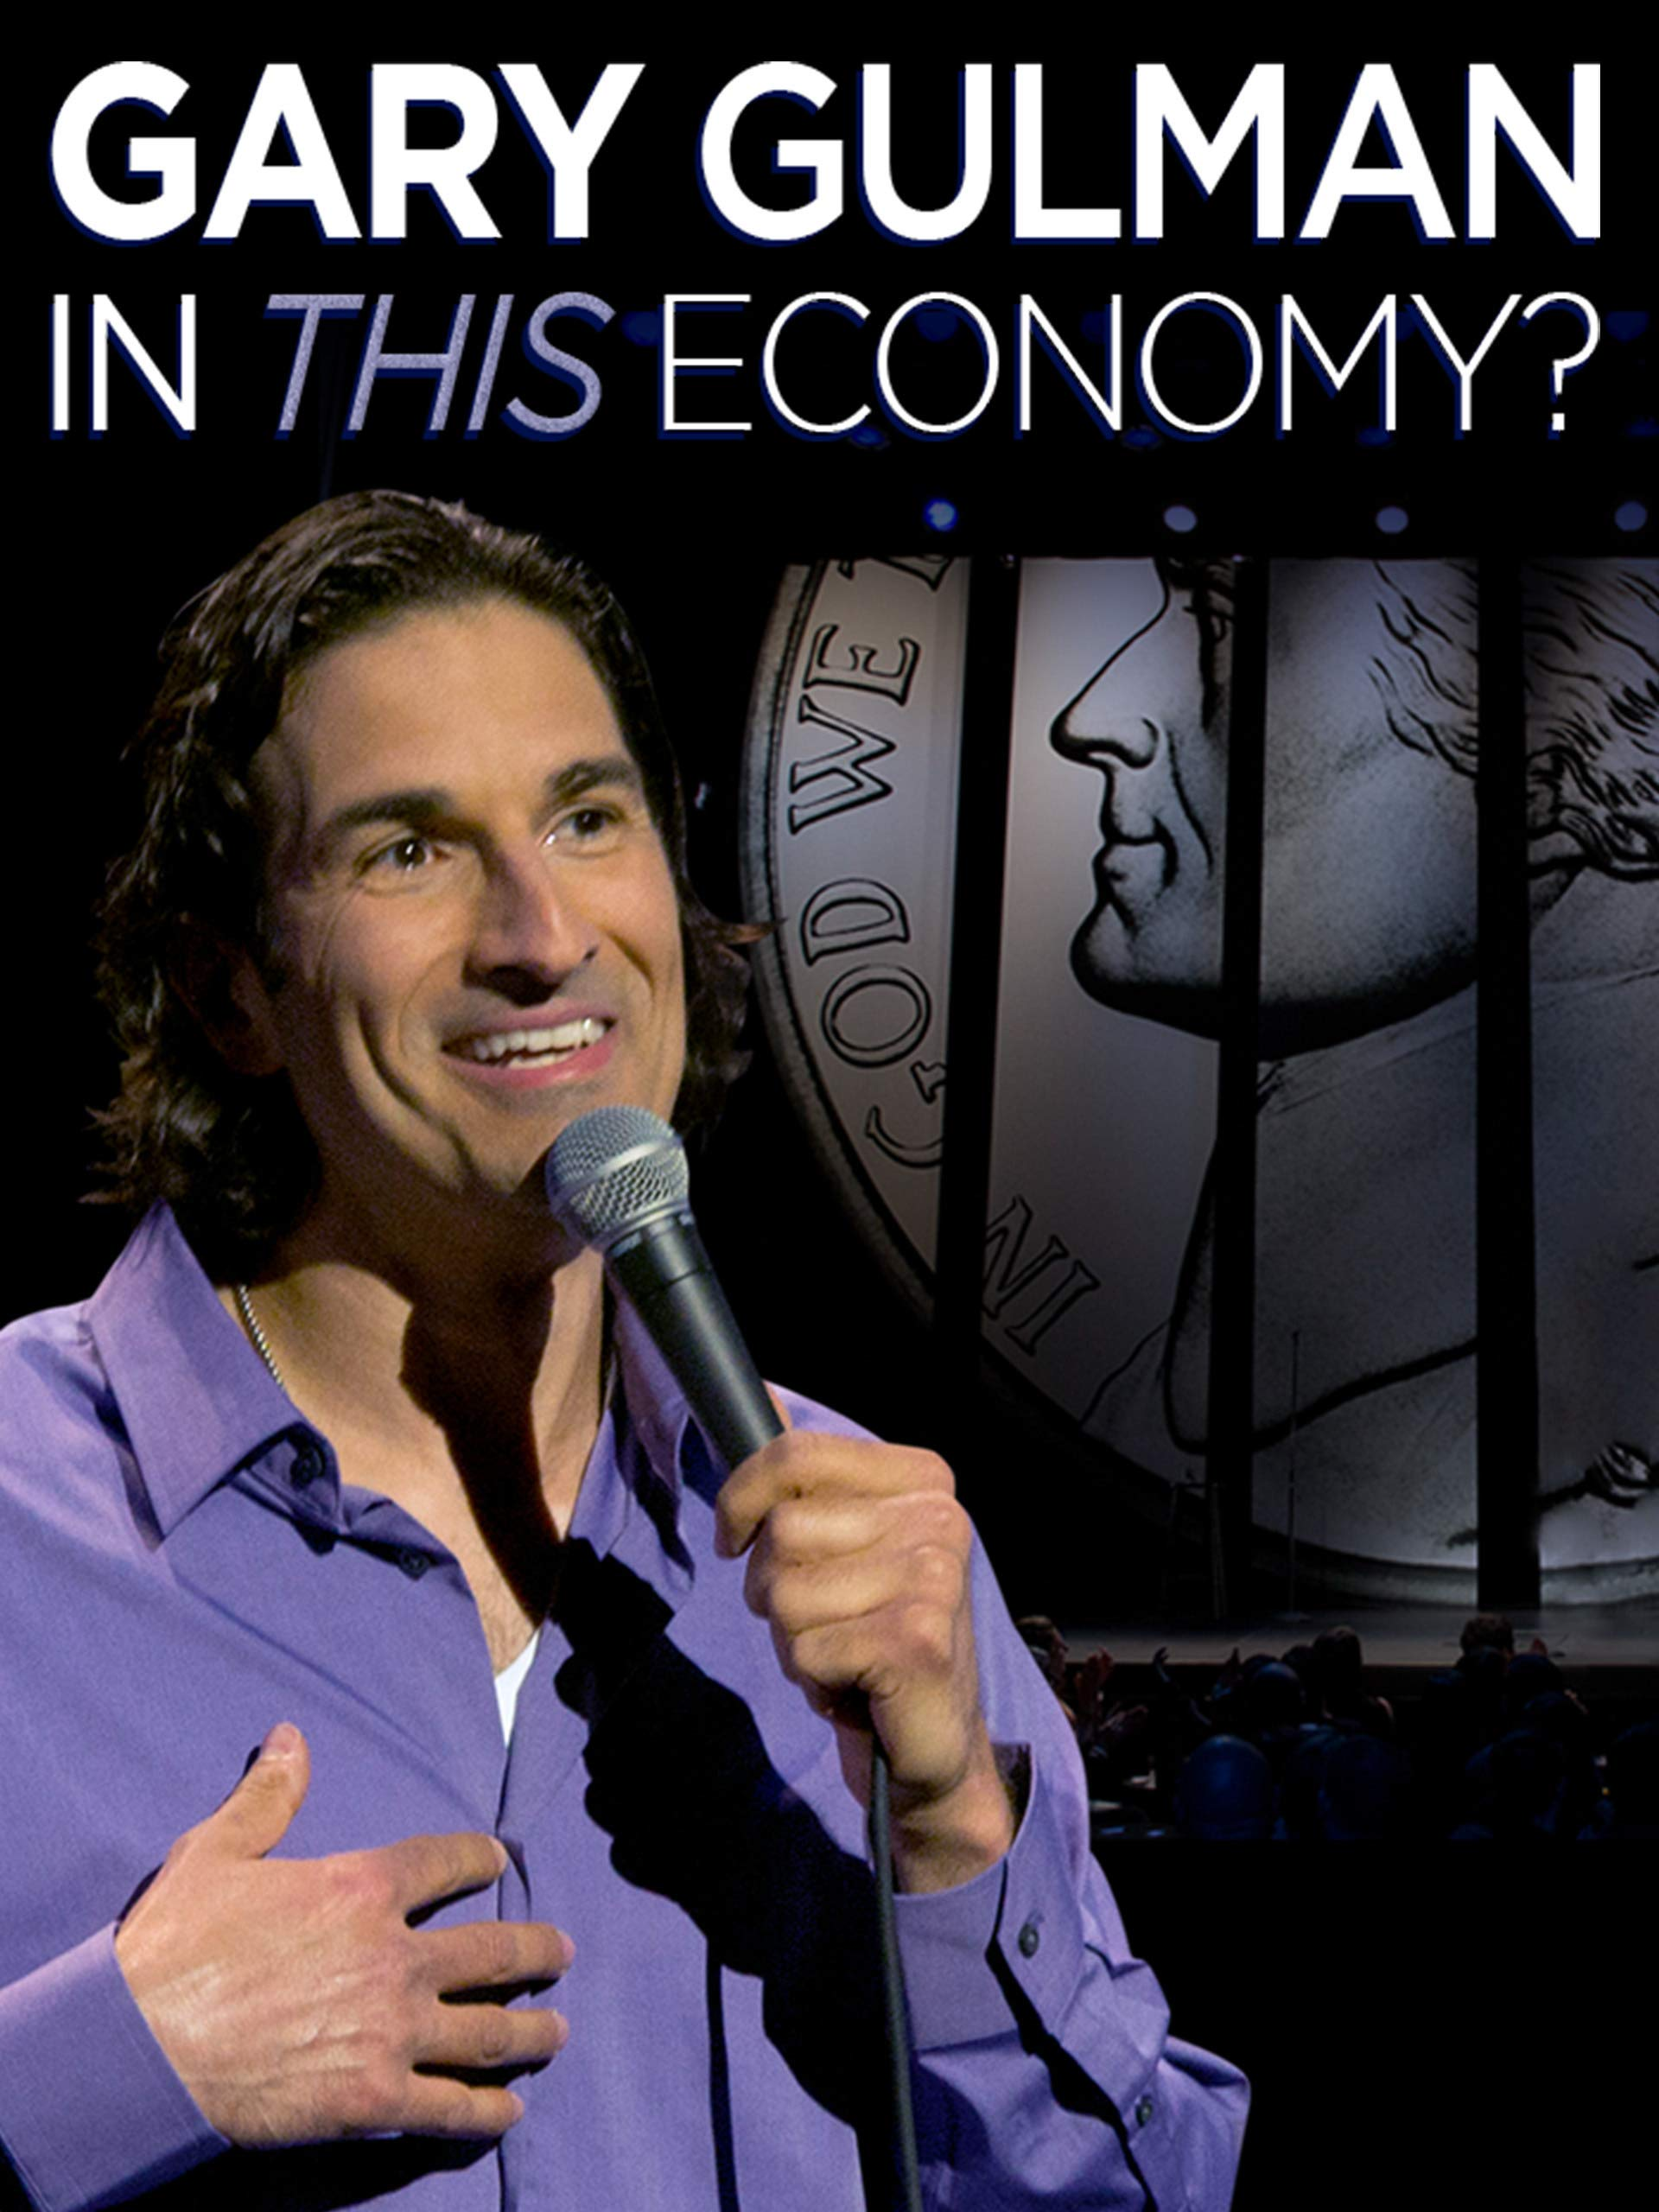 Gary Gulman: In This Economy? on Amazon Prime Instant Video UK